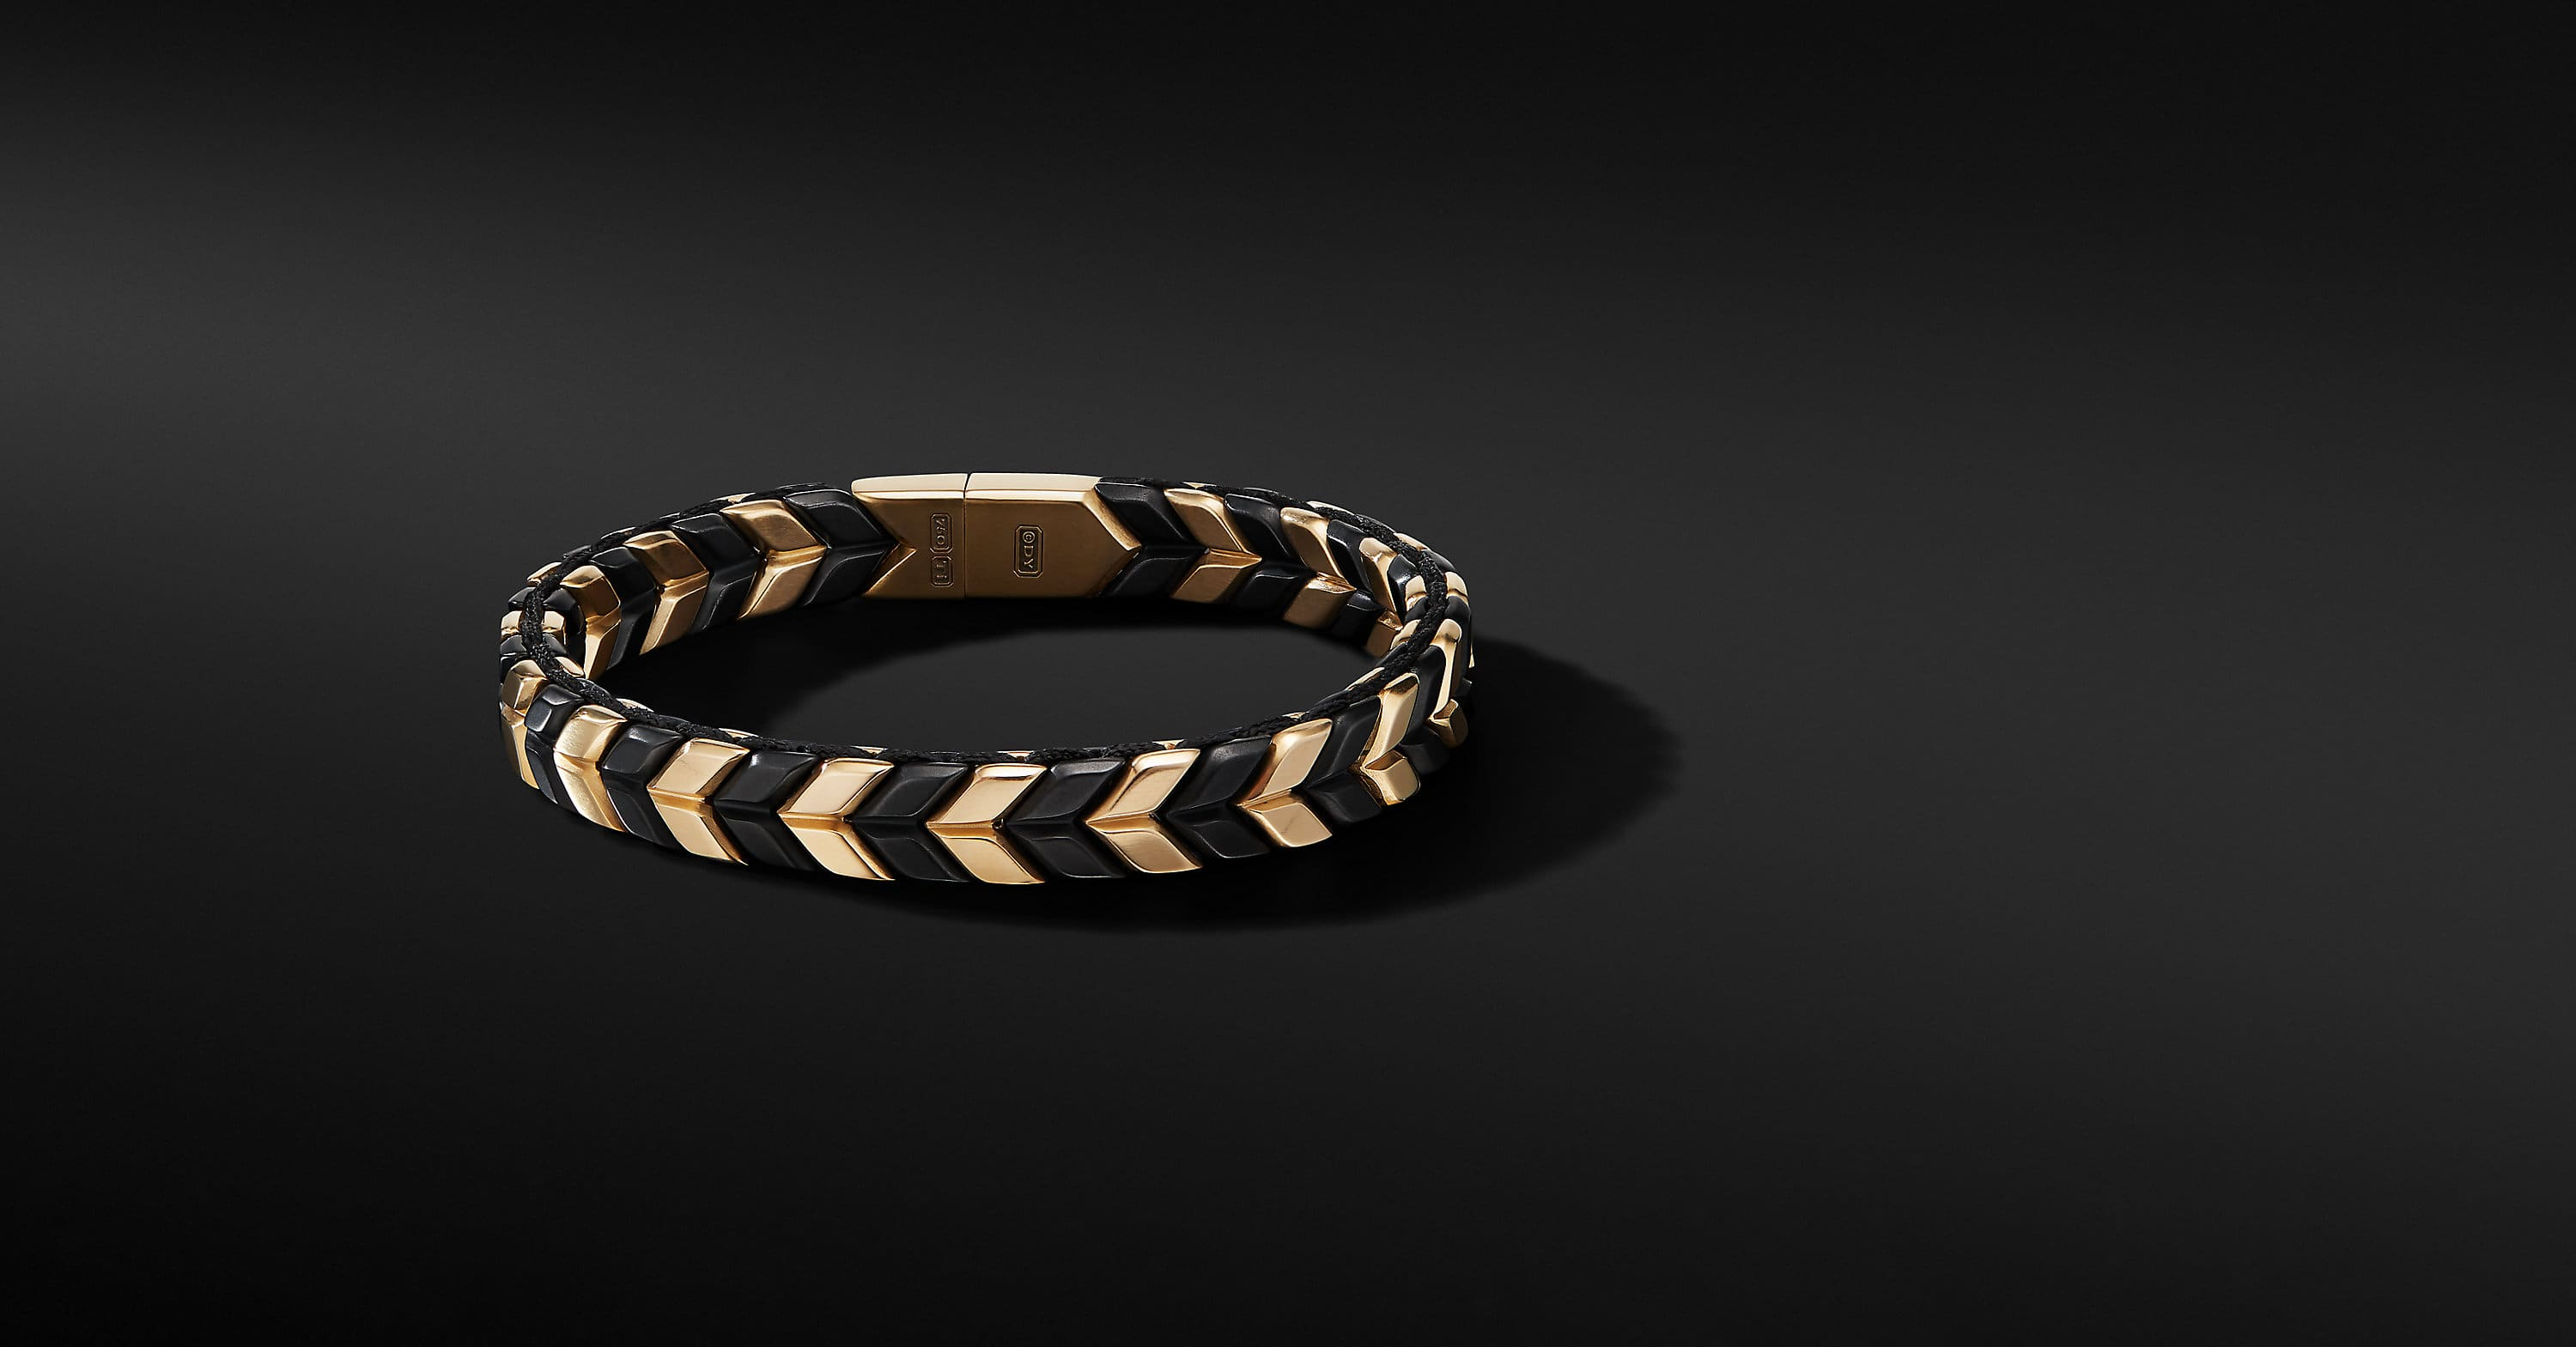 Chevron Woven Bracelet in 18K Yellow Gold with Black Titanium, 9mm